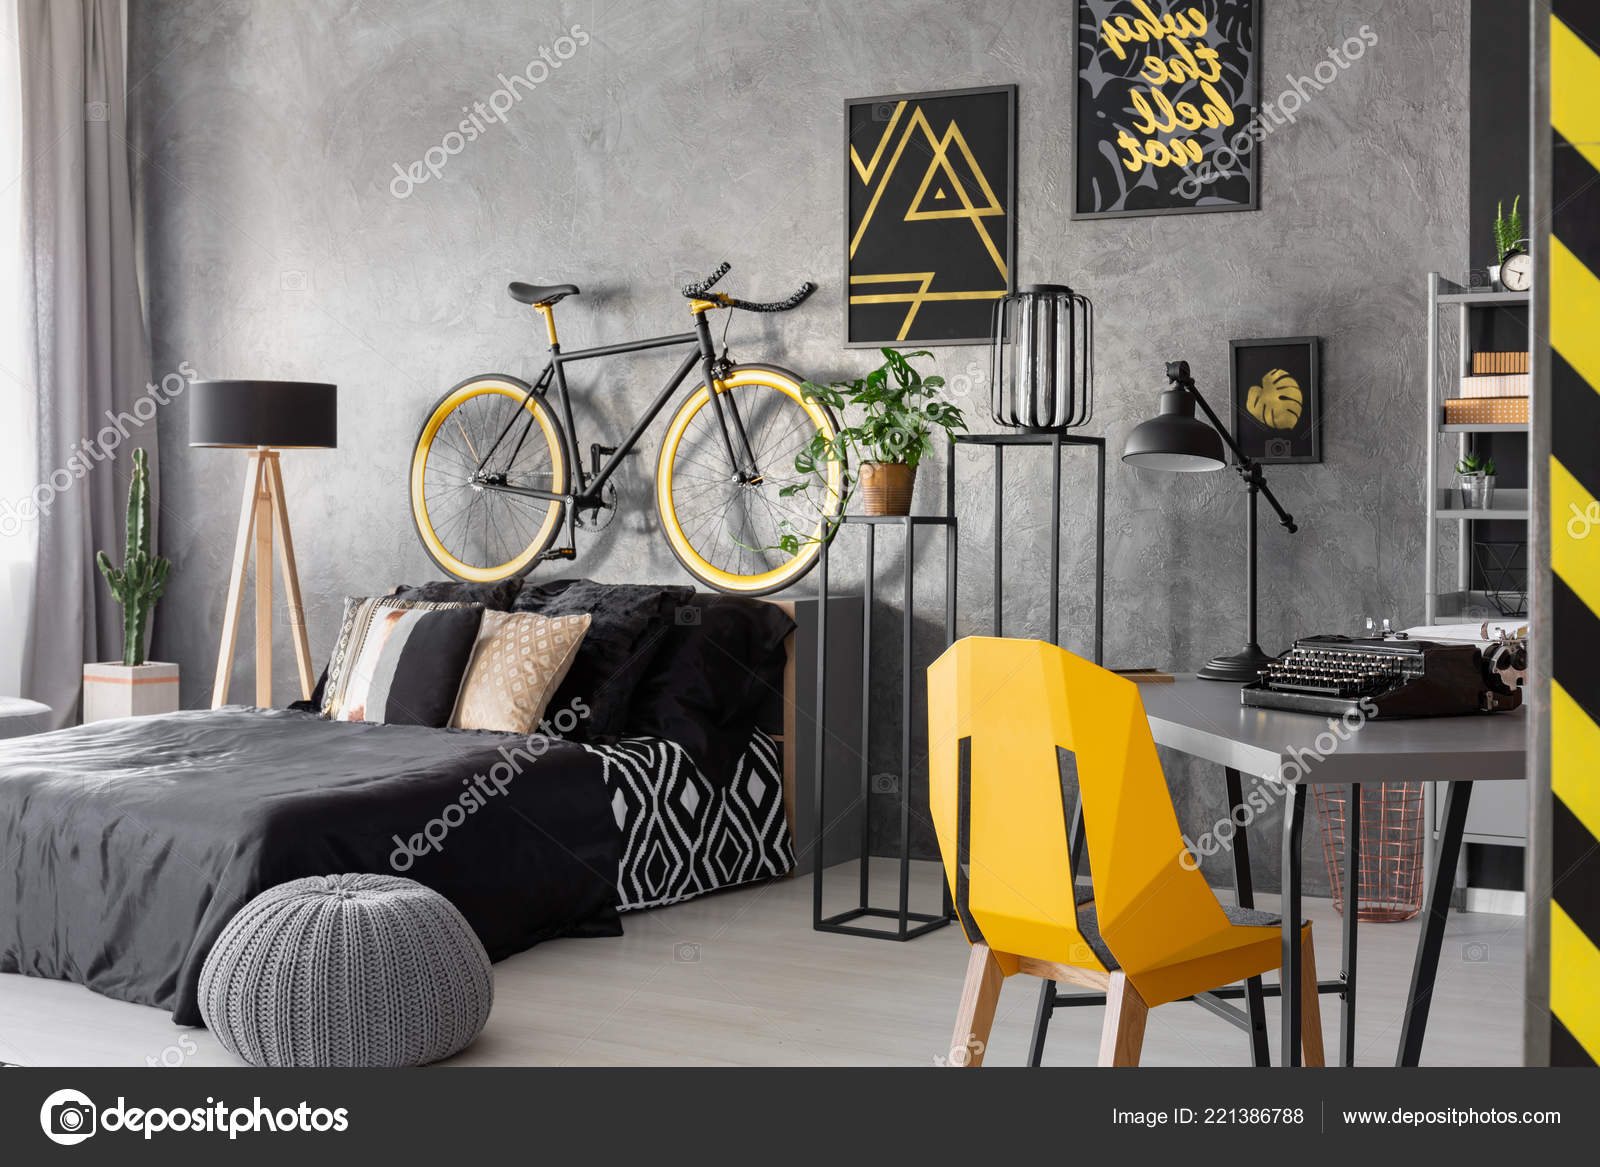 Posters Bike Black Bed Grey Teenager Room Interior Pouf Yellow